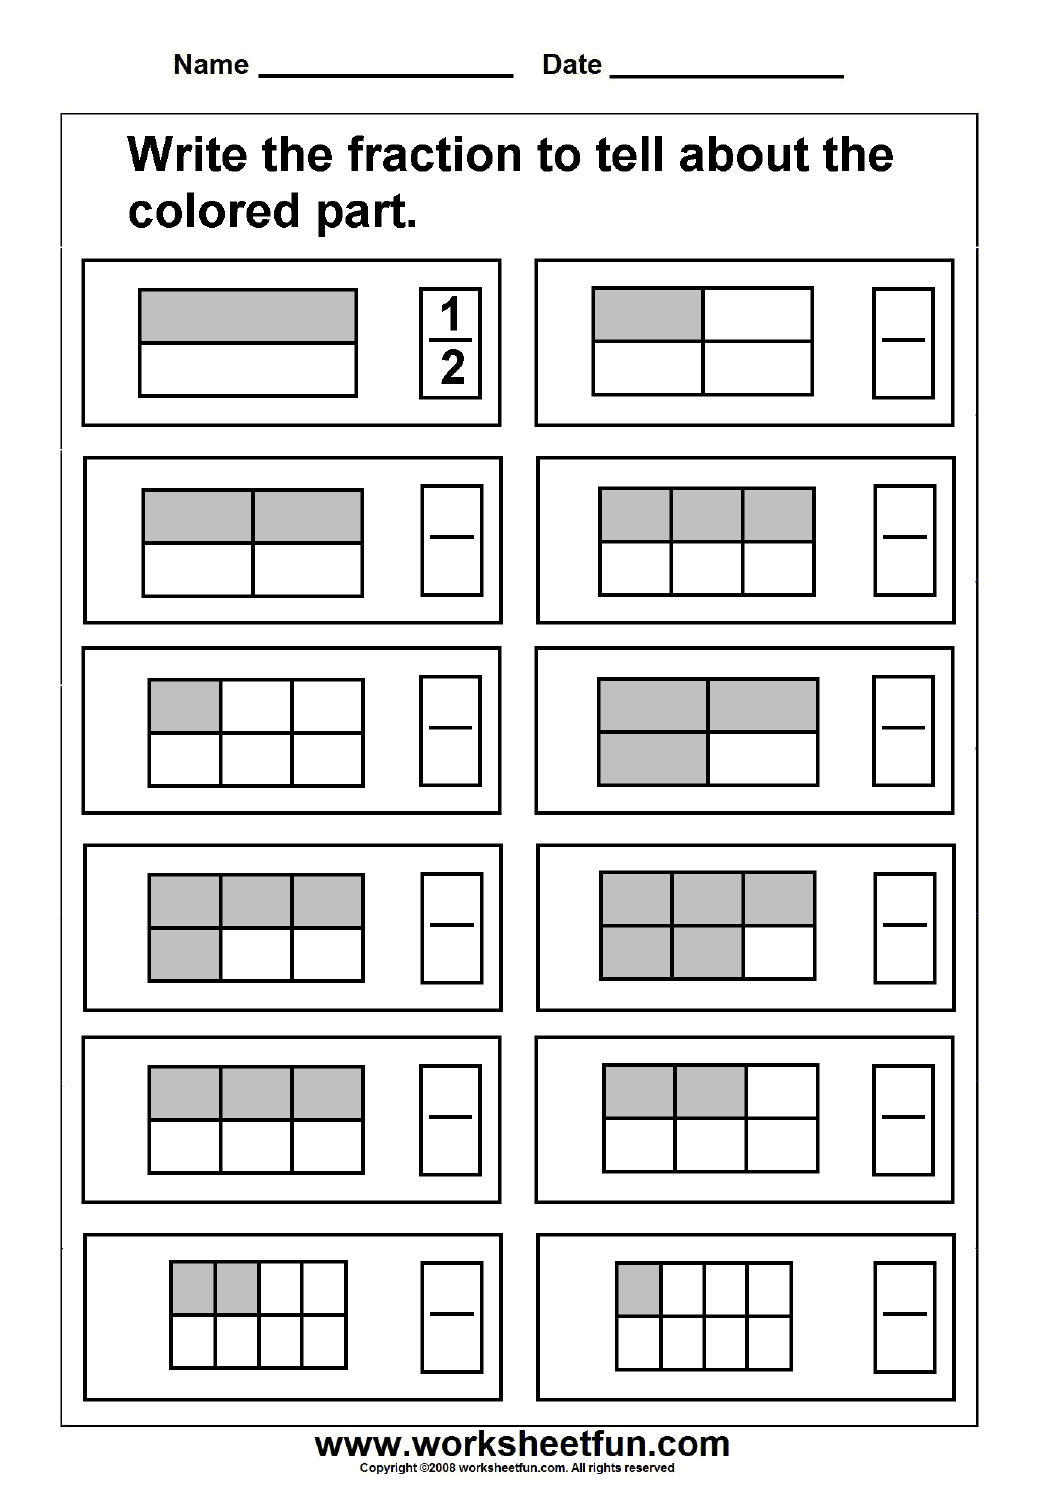 Fraction FREE Printable Worksheets Worksheetfun – Fractions Worksheets